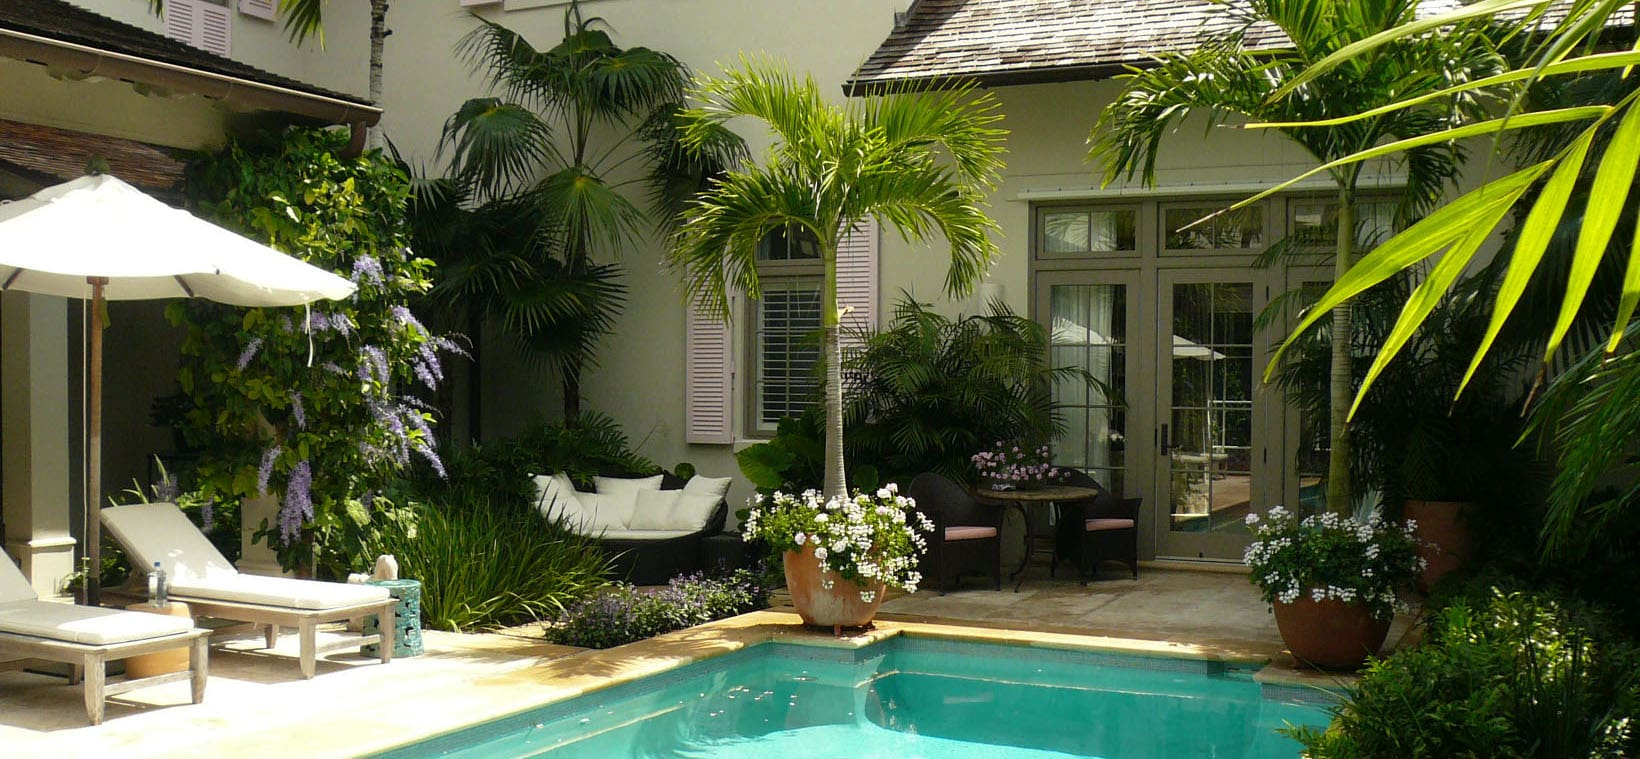 aiello-landscape_container-plants-poolside